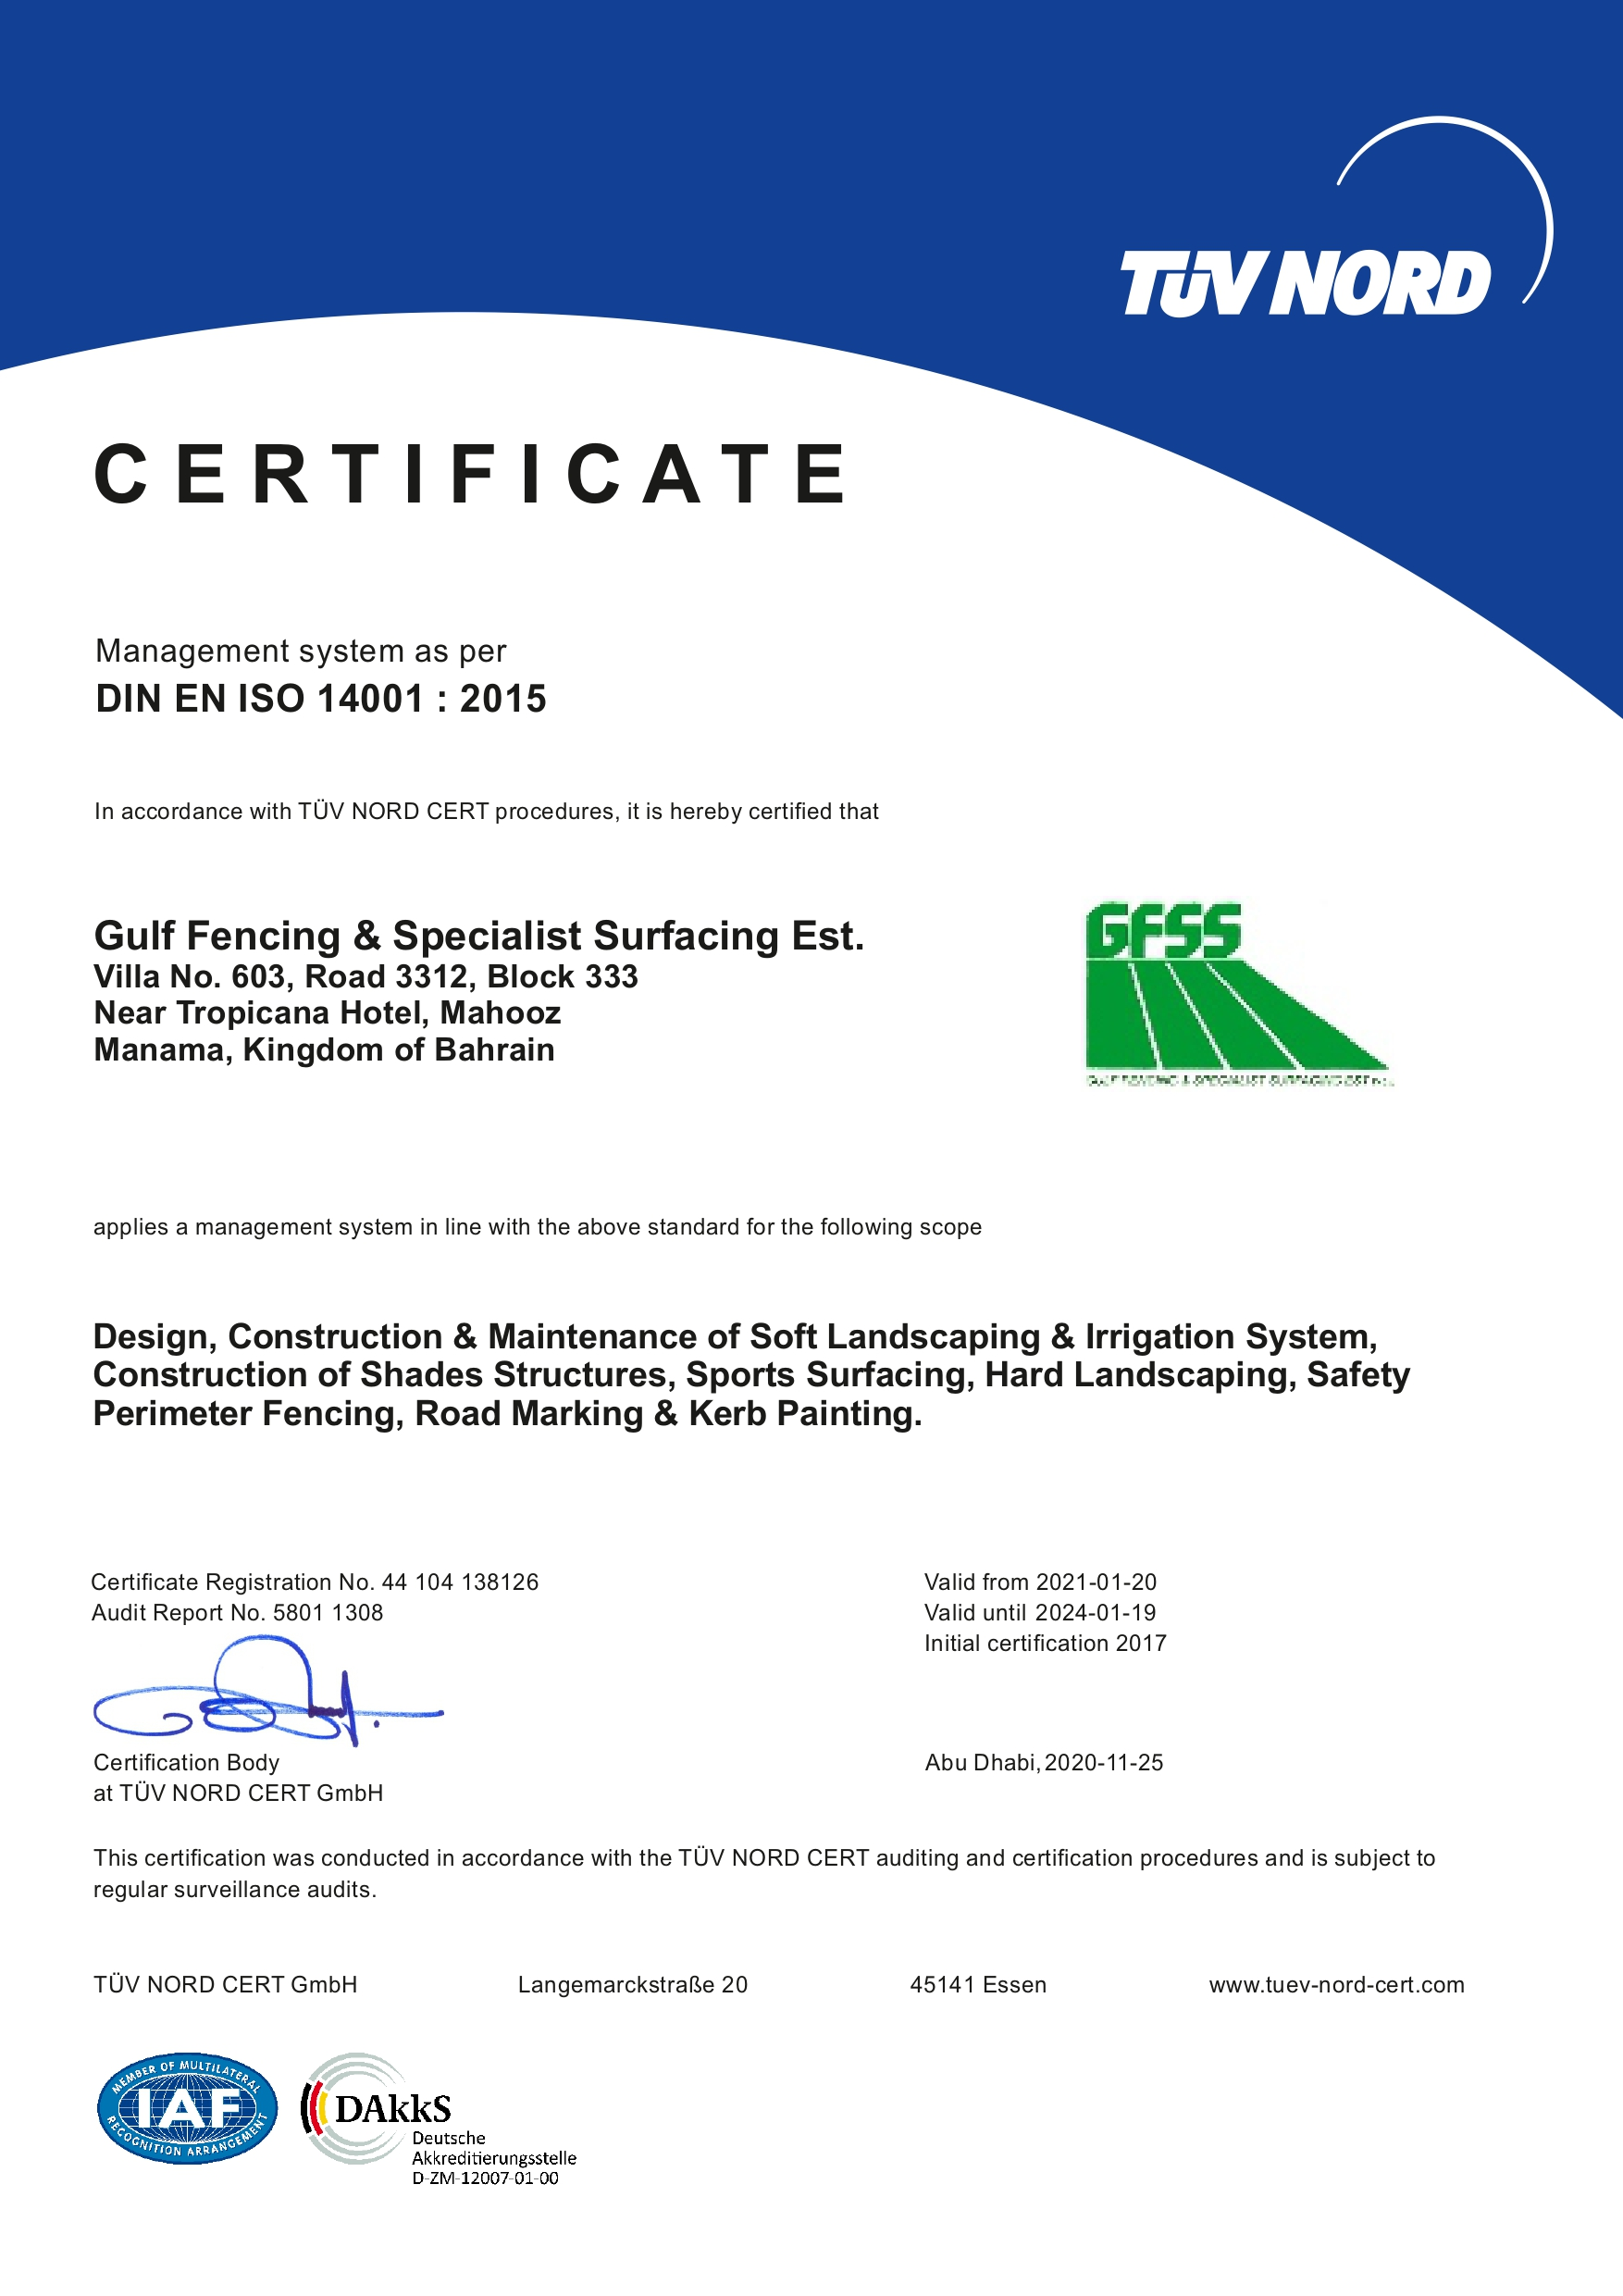 Certifications Policies Gulf Fencing